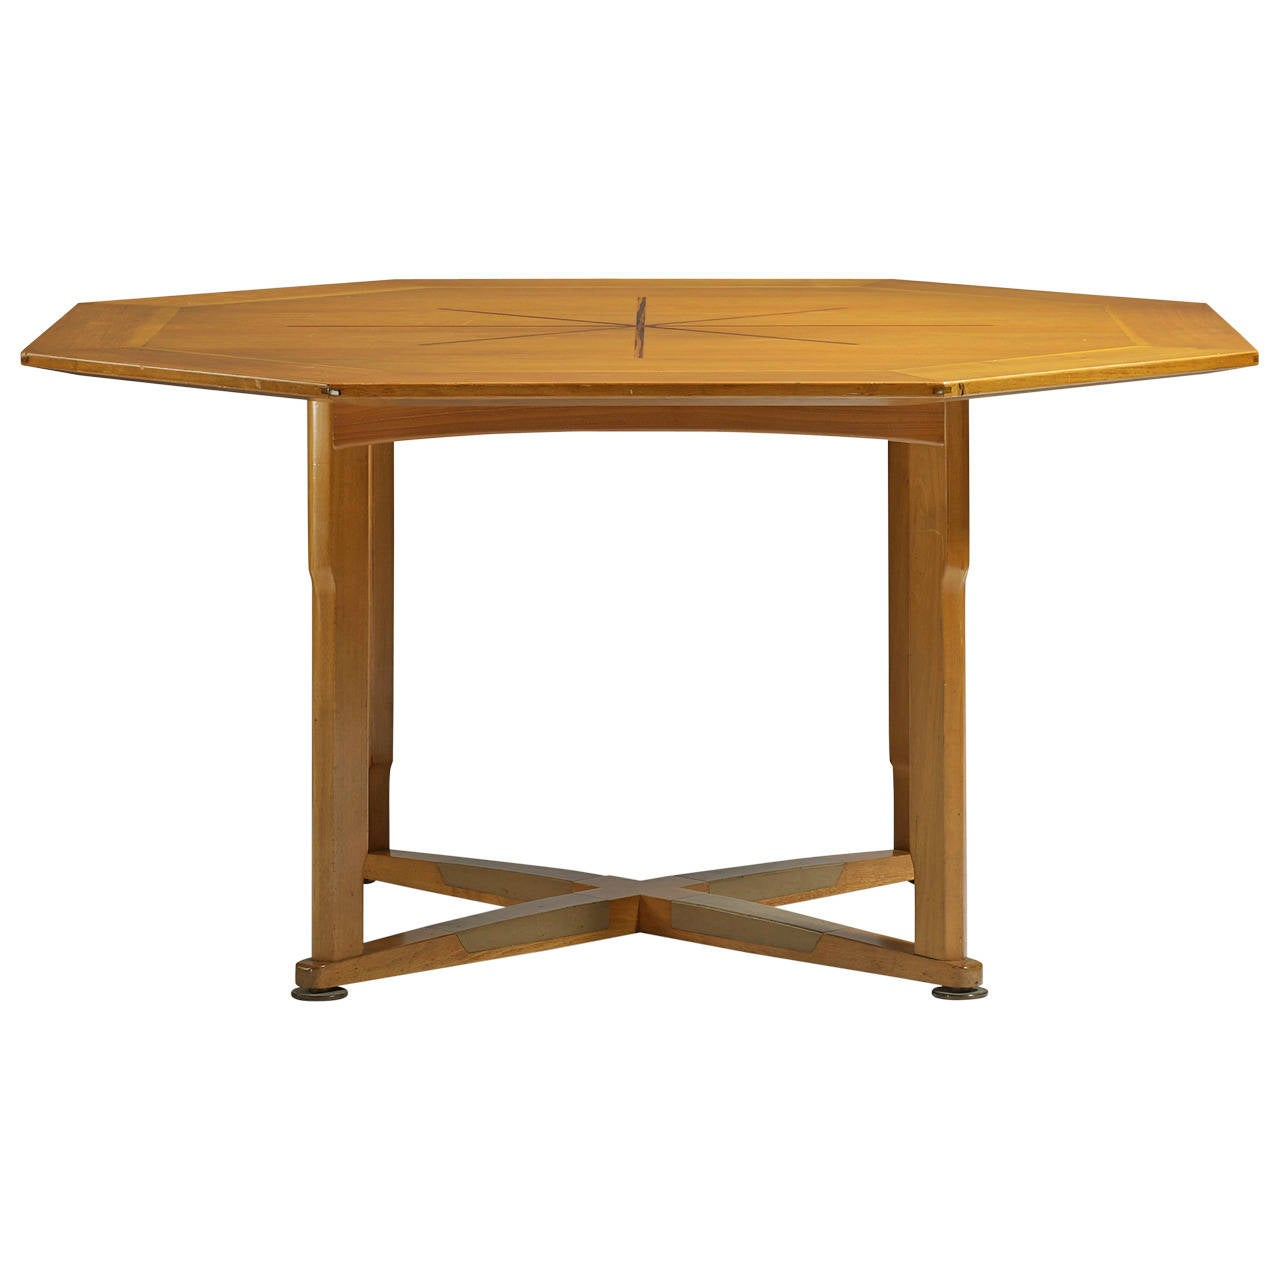 Edward wormley dining or game table at 1stdibs for Dining room game table